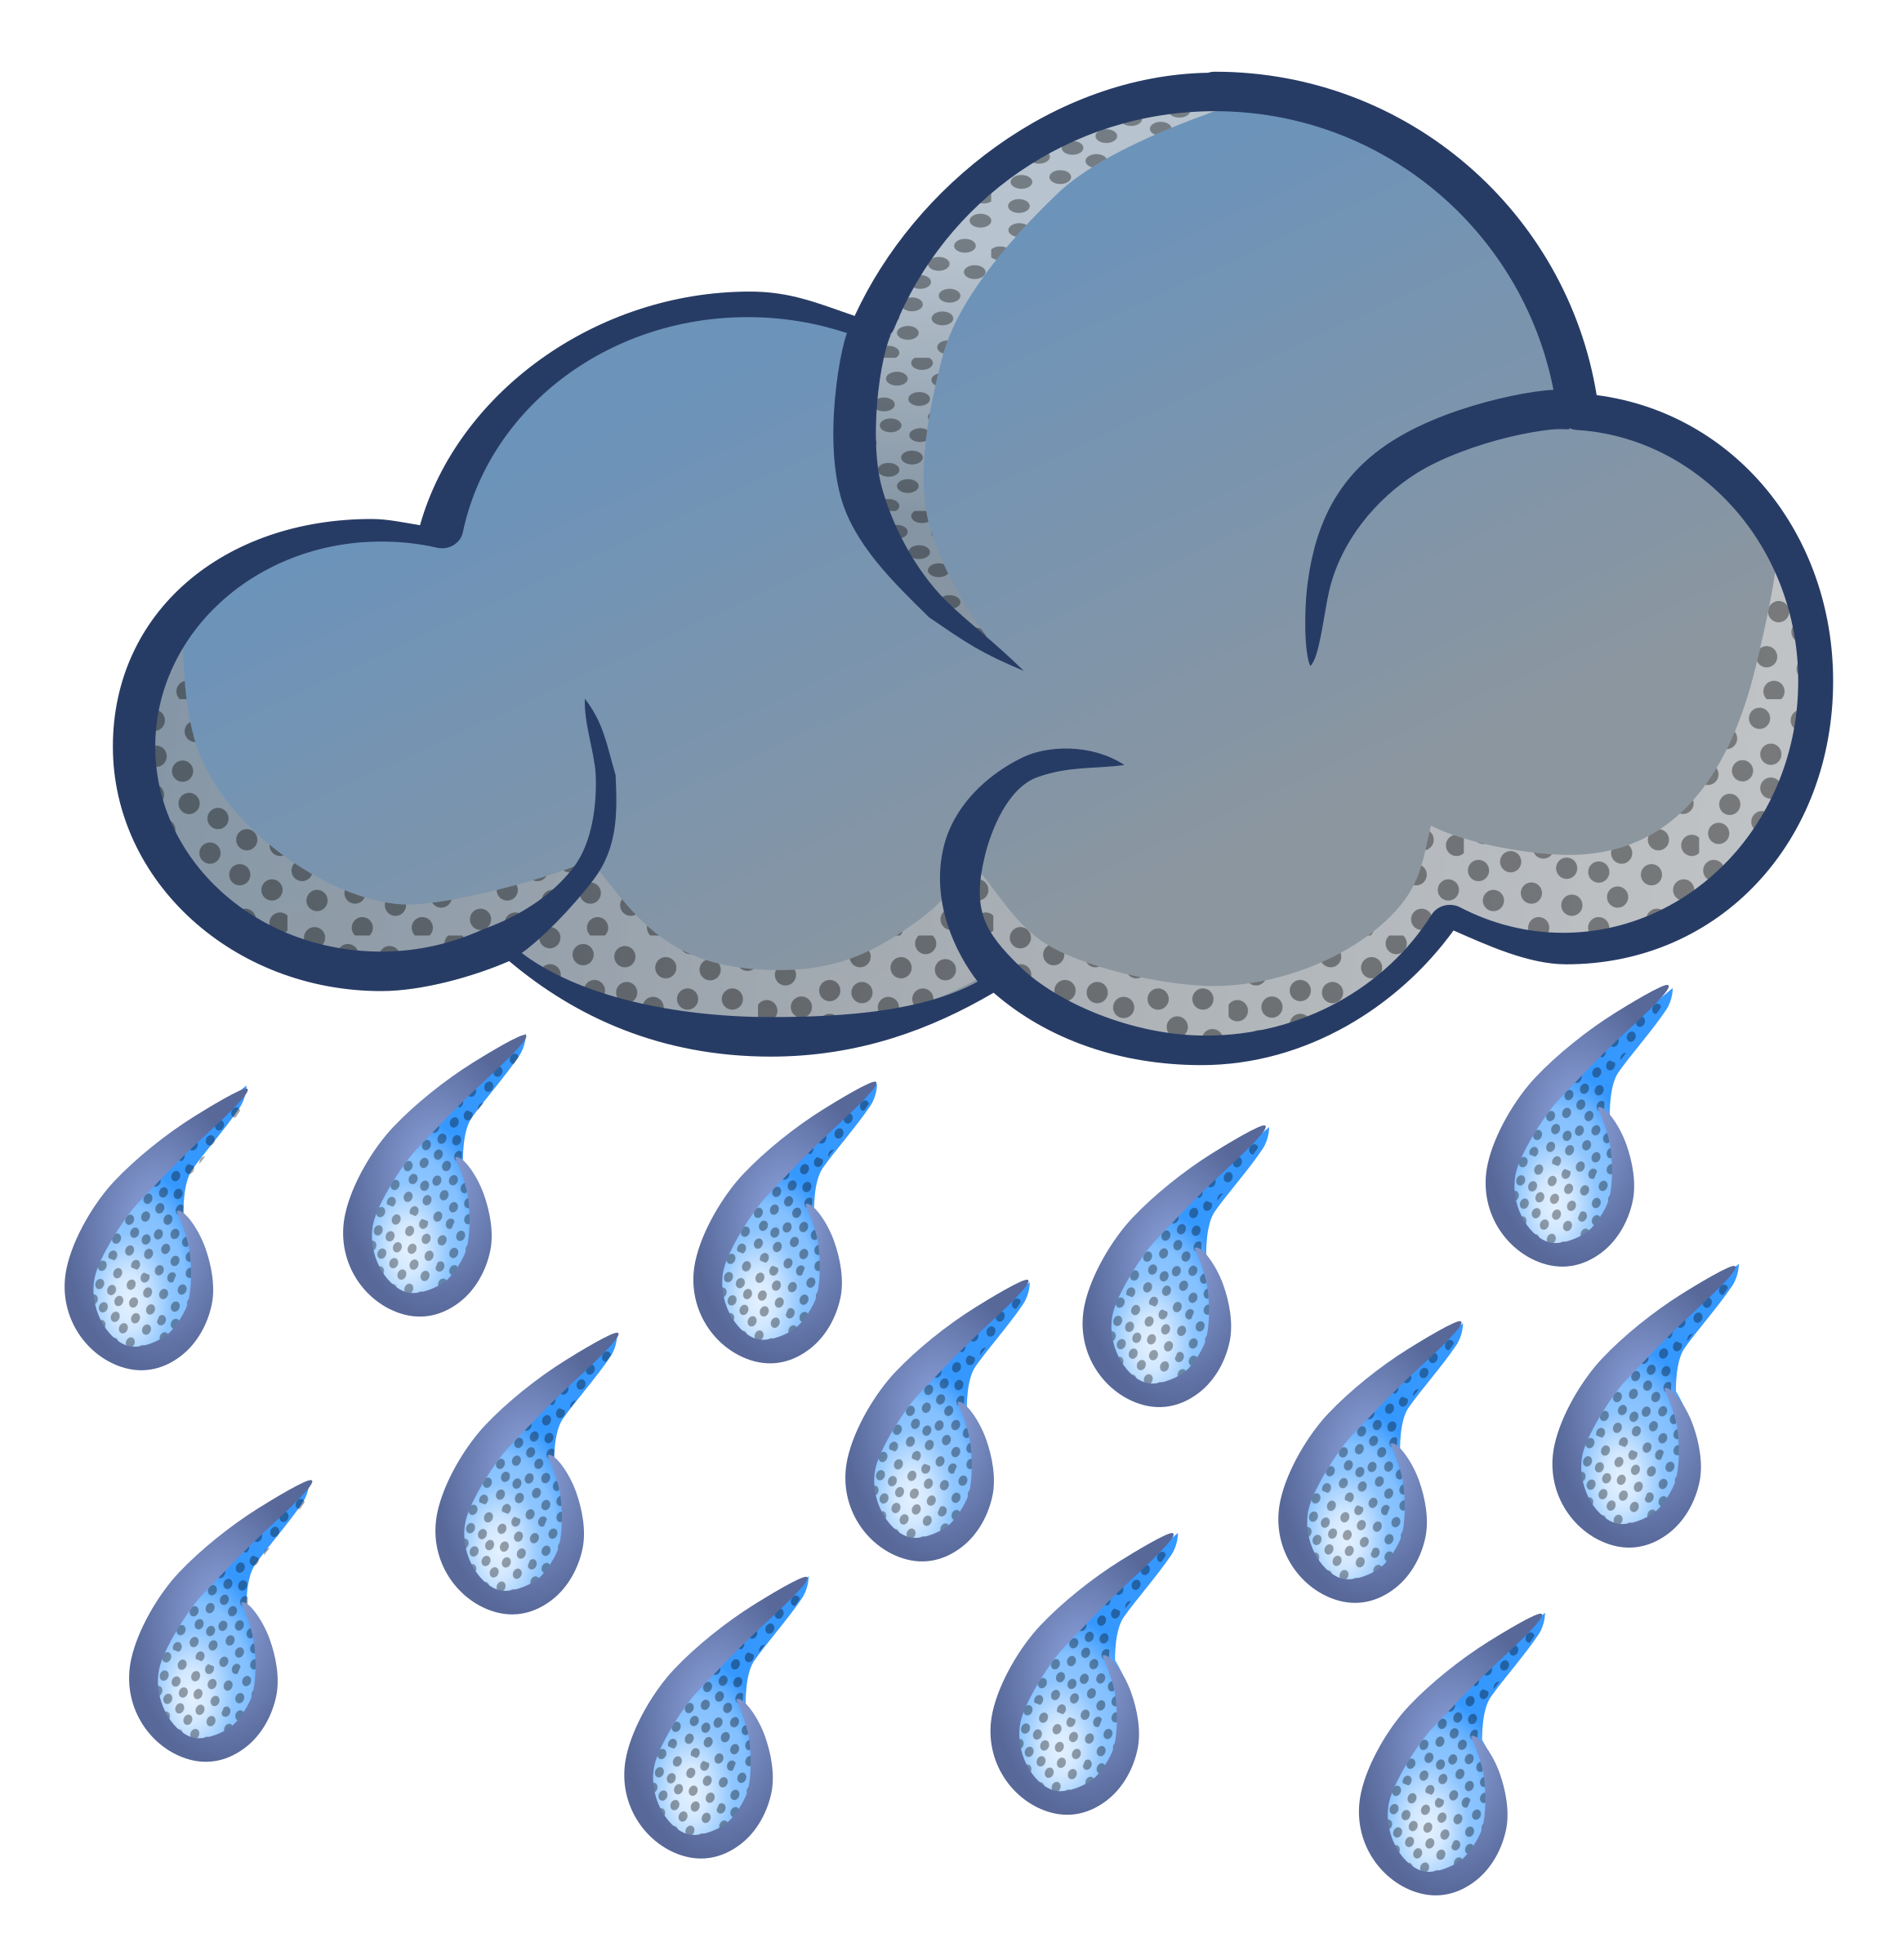 Raining clipart. Raindrops ulan pencil and